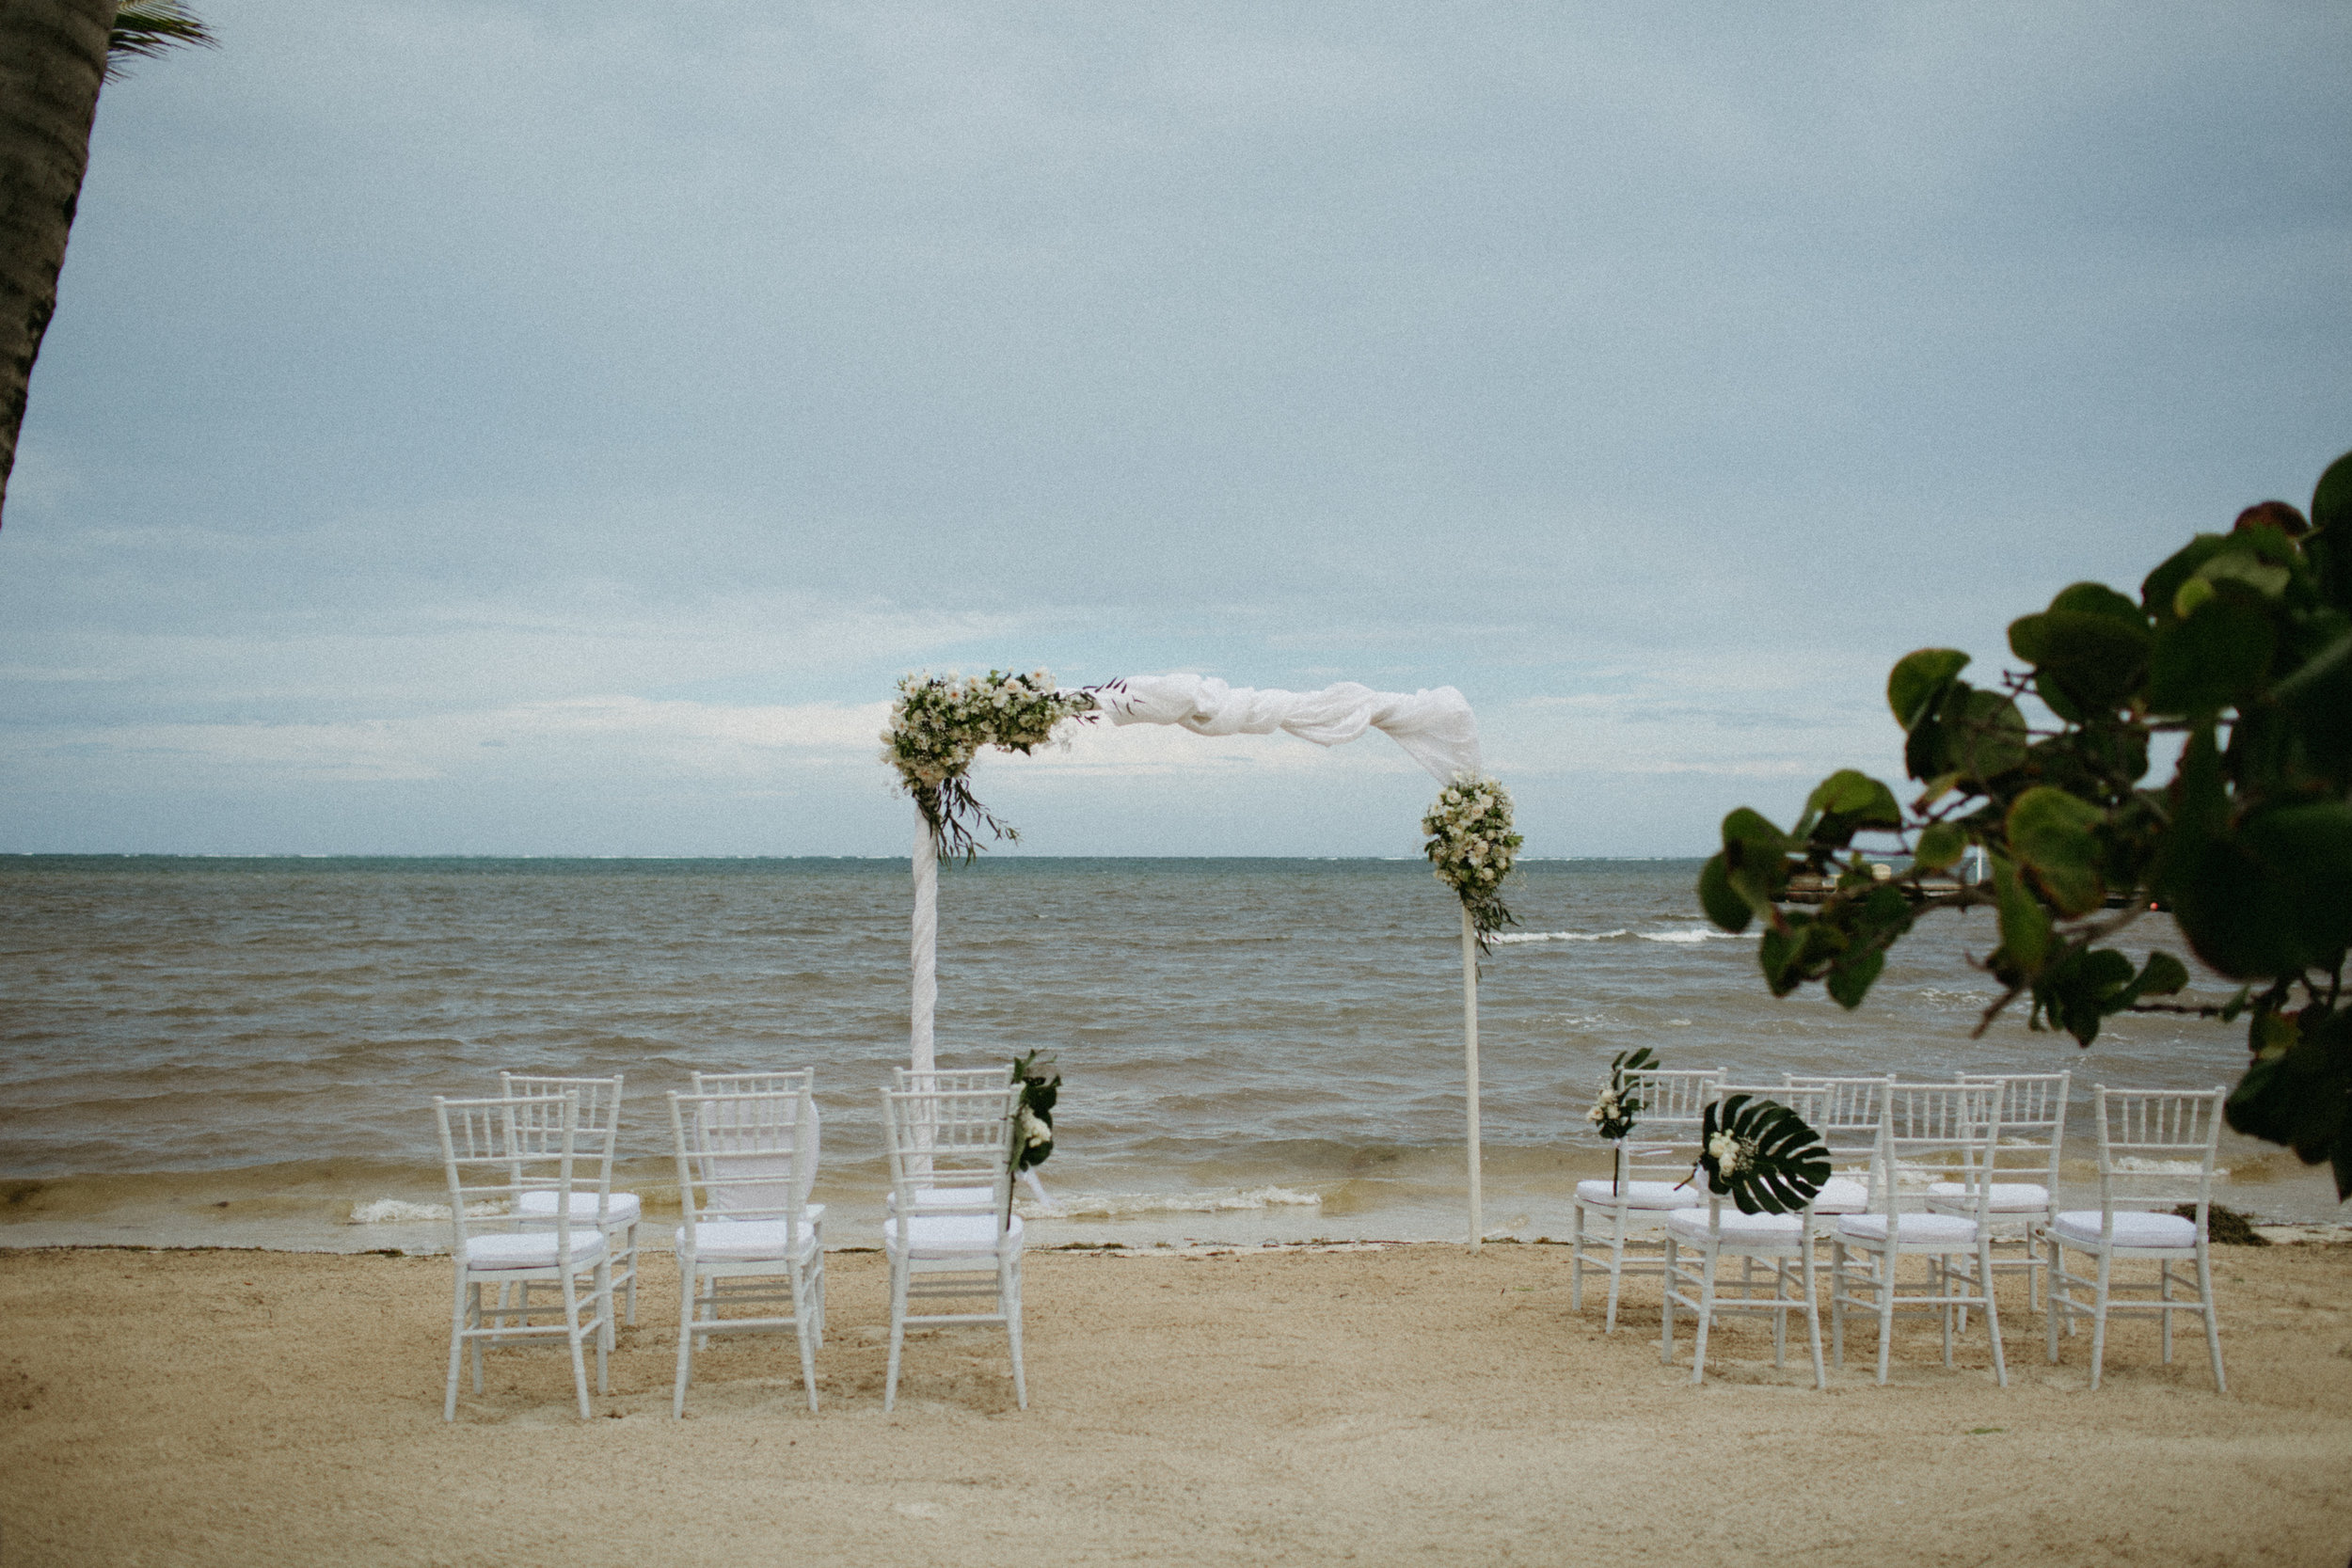 san-pescador-belize-wedding-christinemariephoto-j-k-69.jpg